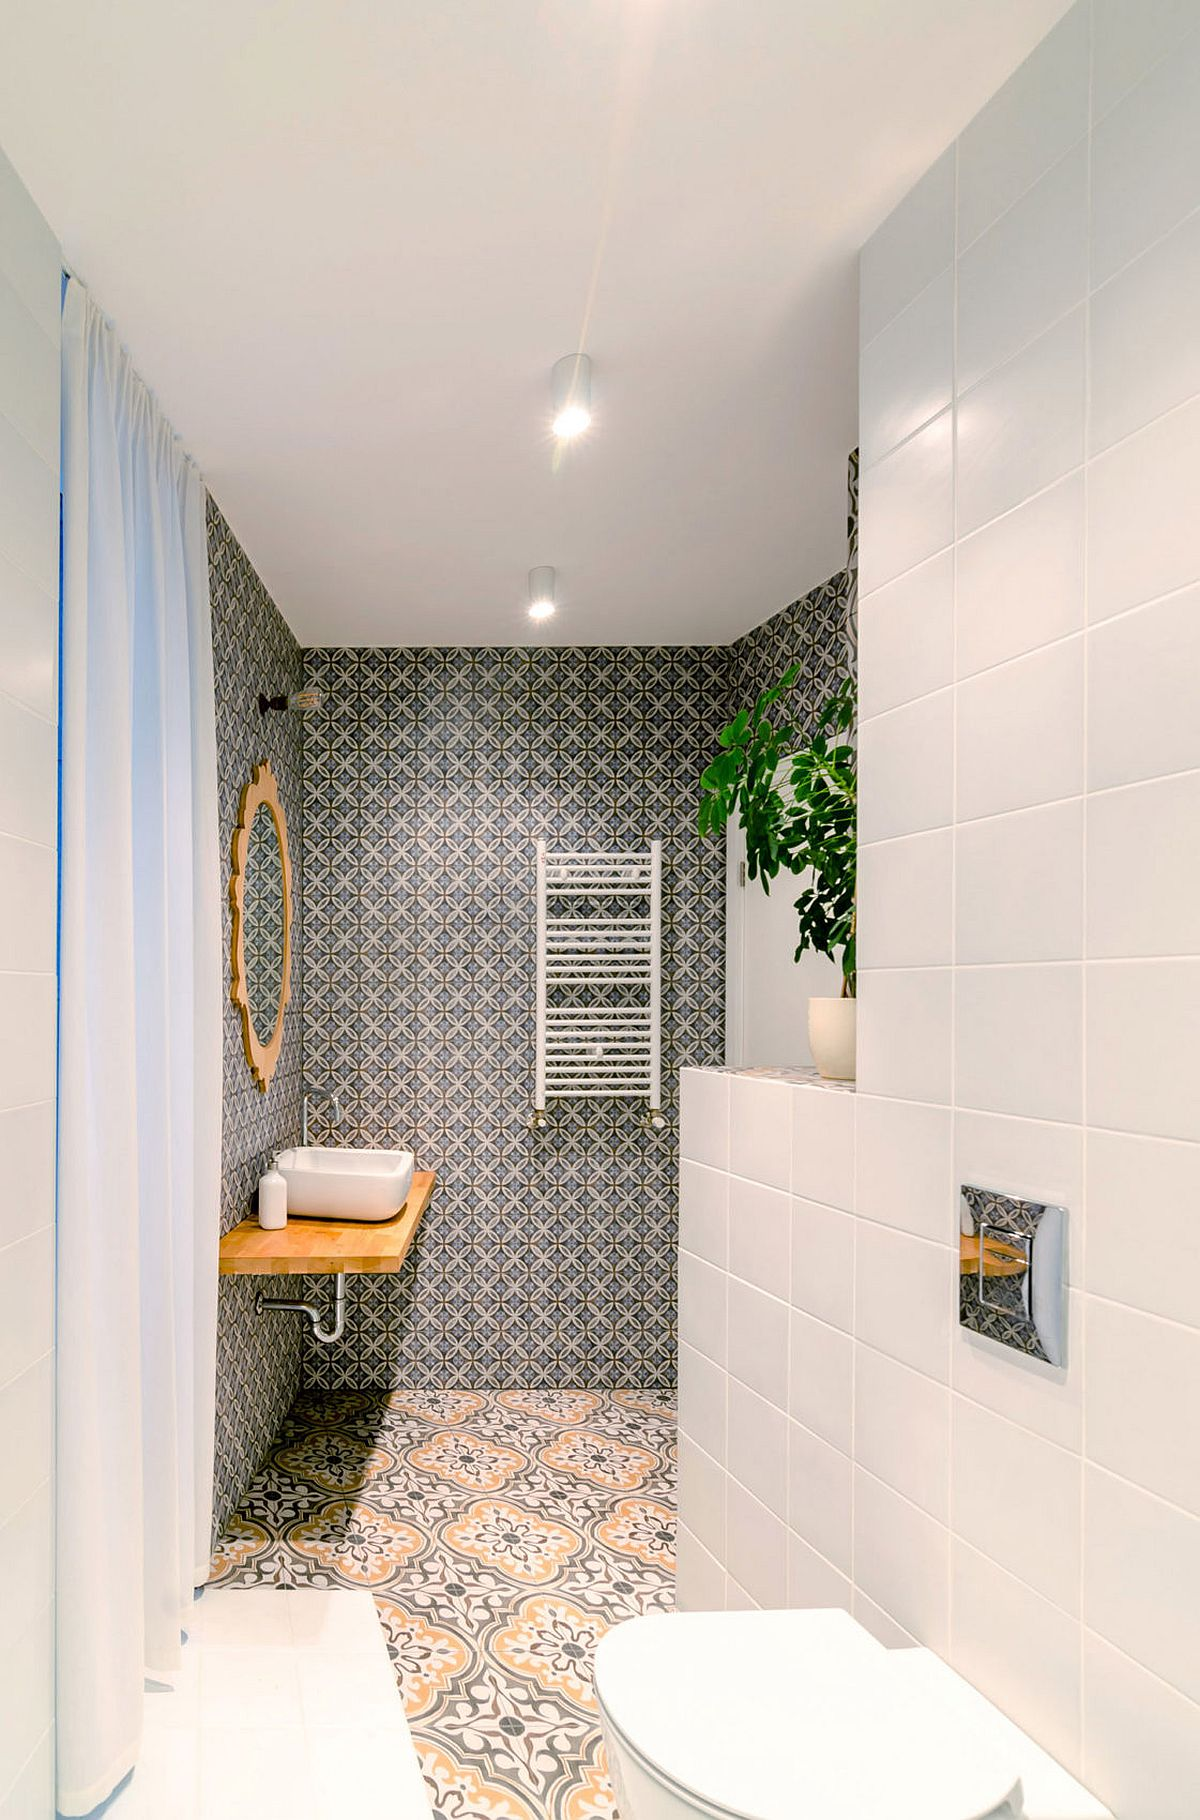 Modern bathroom in white with floor and walls covered in tiles